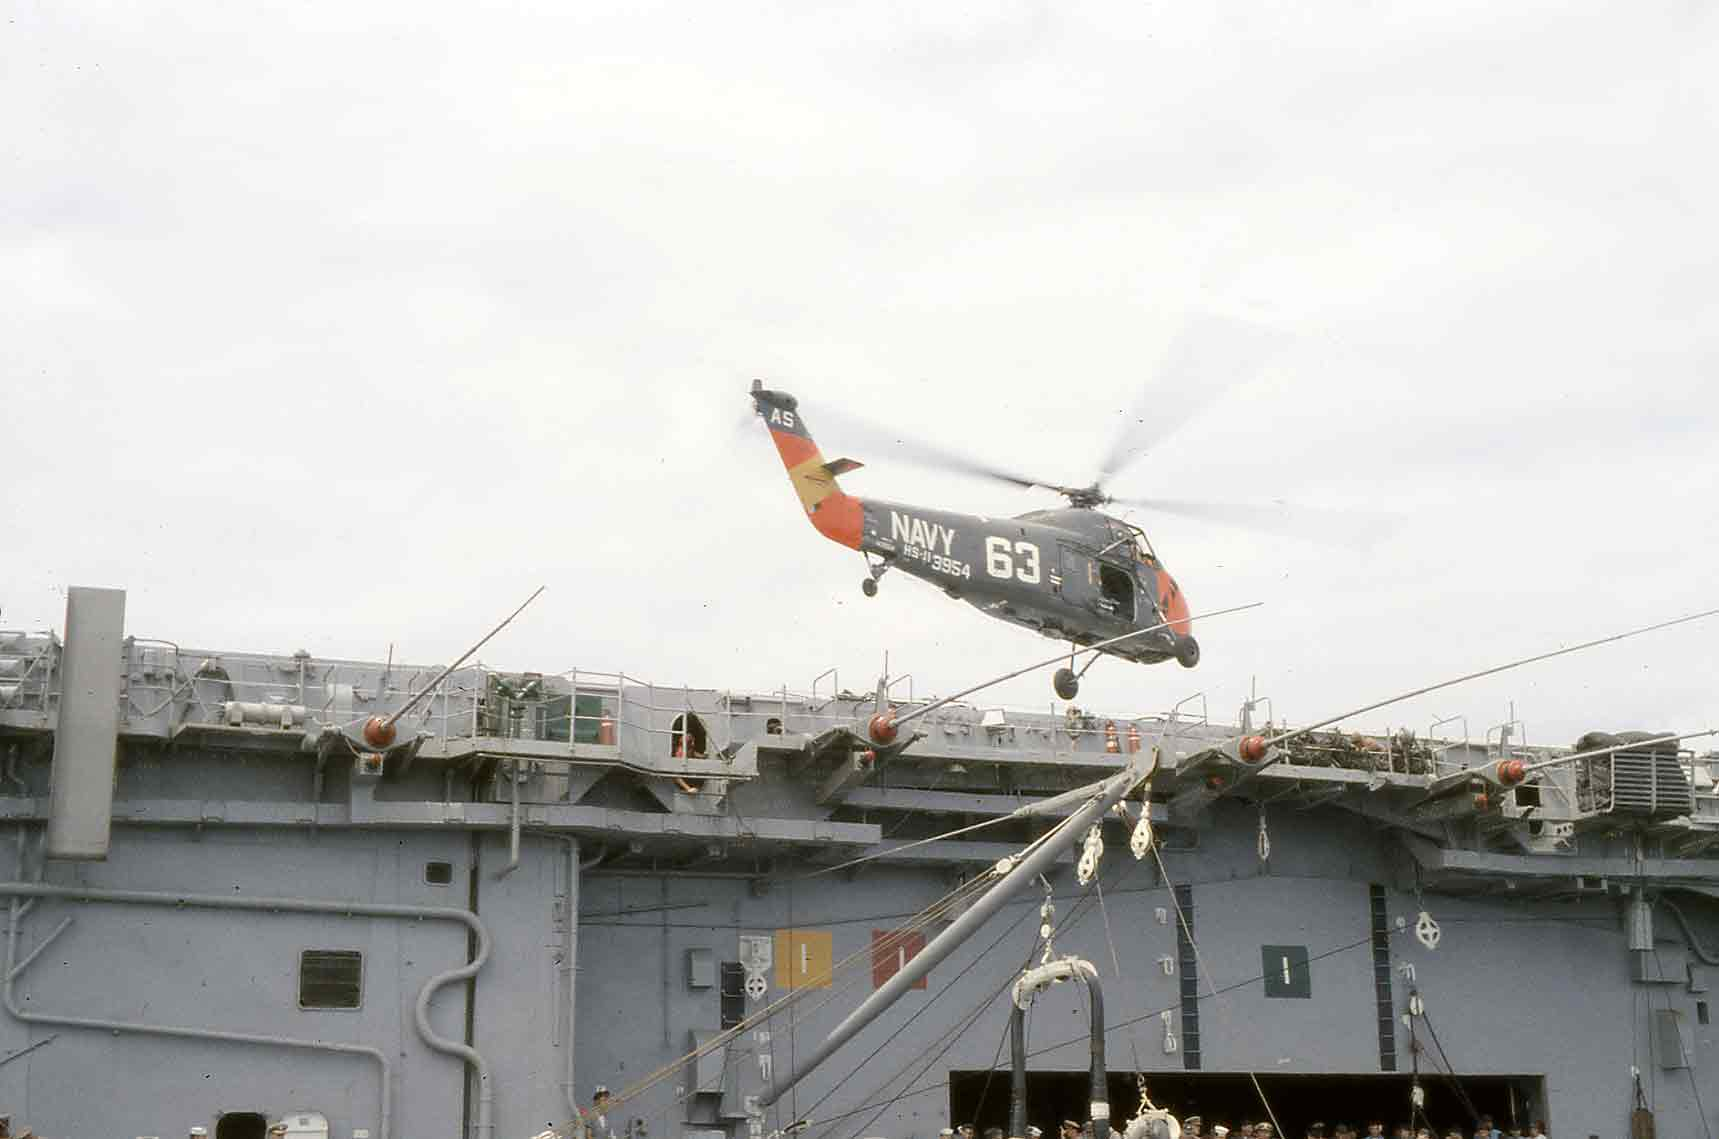 Photo - helo lifting off from Wasp flightdeck